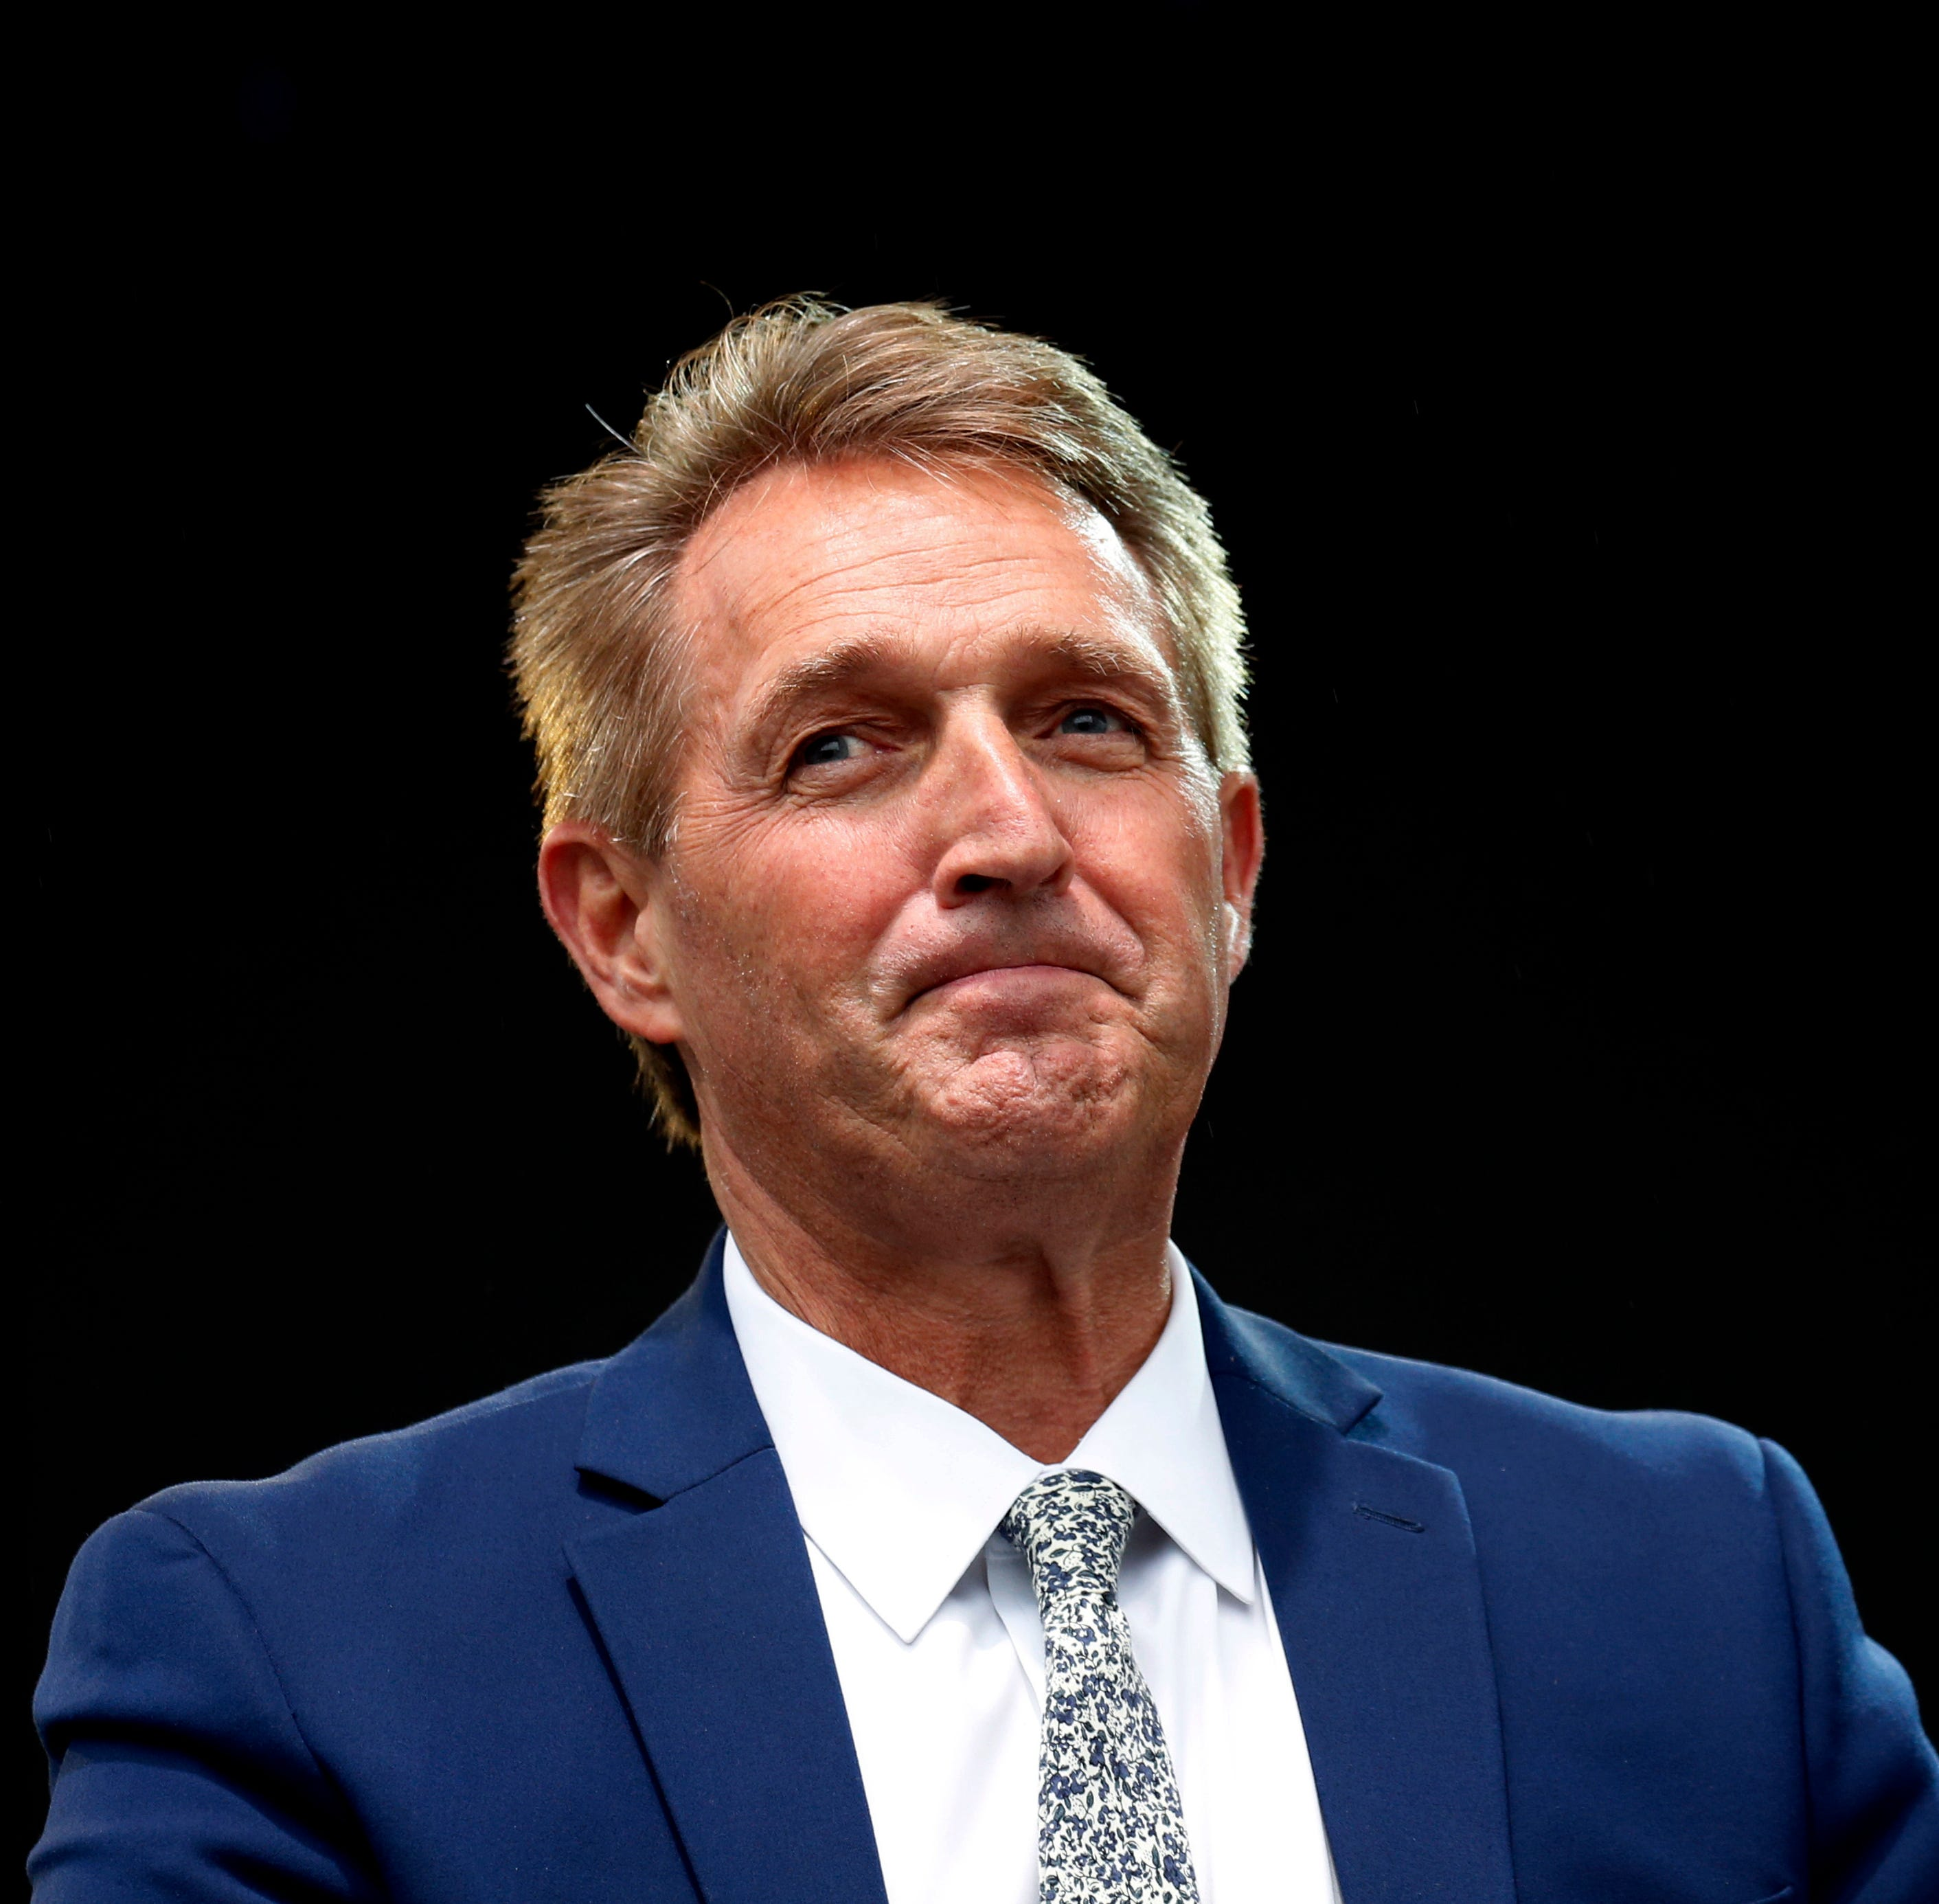 AZ Memo: Flake set to make final Senate speech; Groups help migrant families released by ICE; 'Obamacare' deadline is Saturday